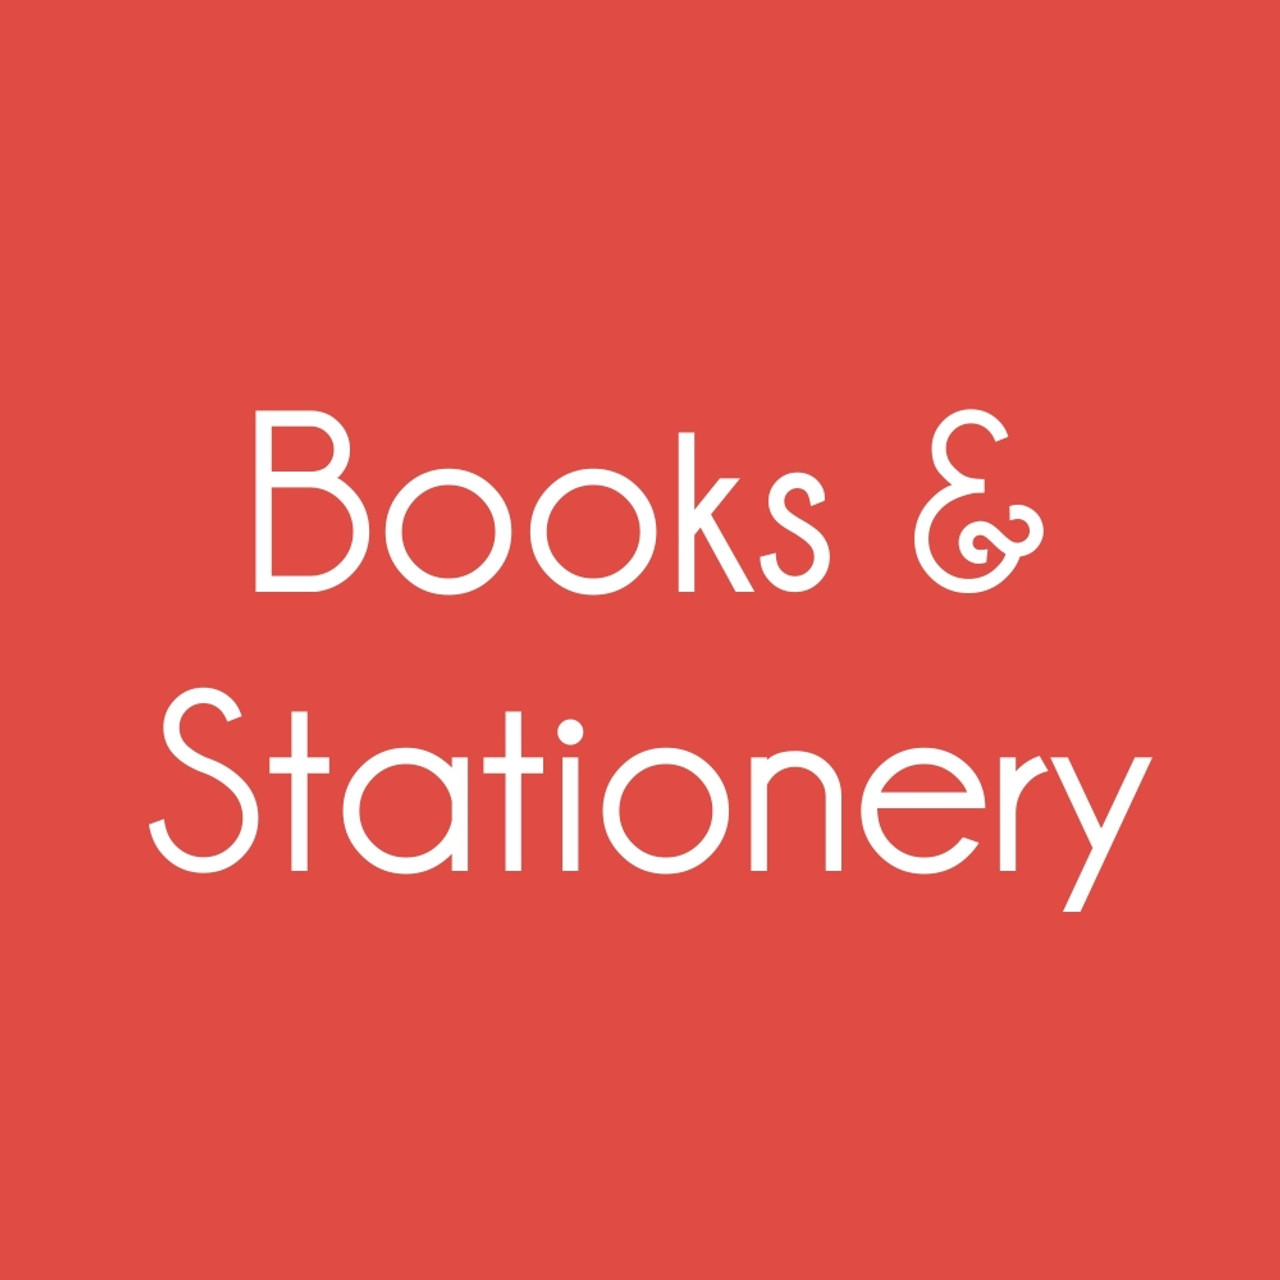 Books & Stationery